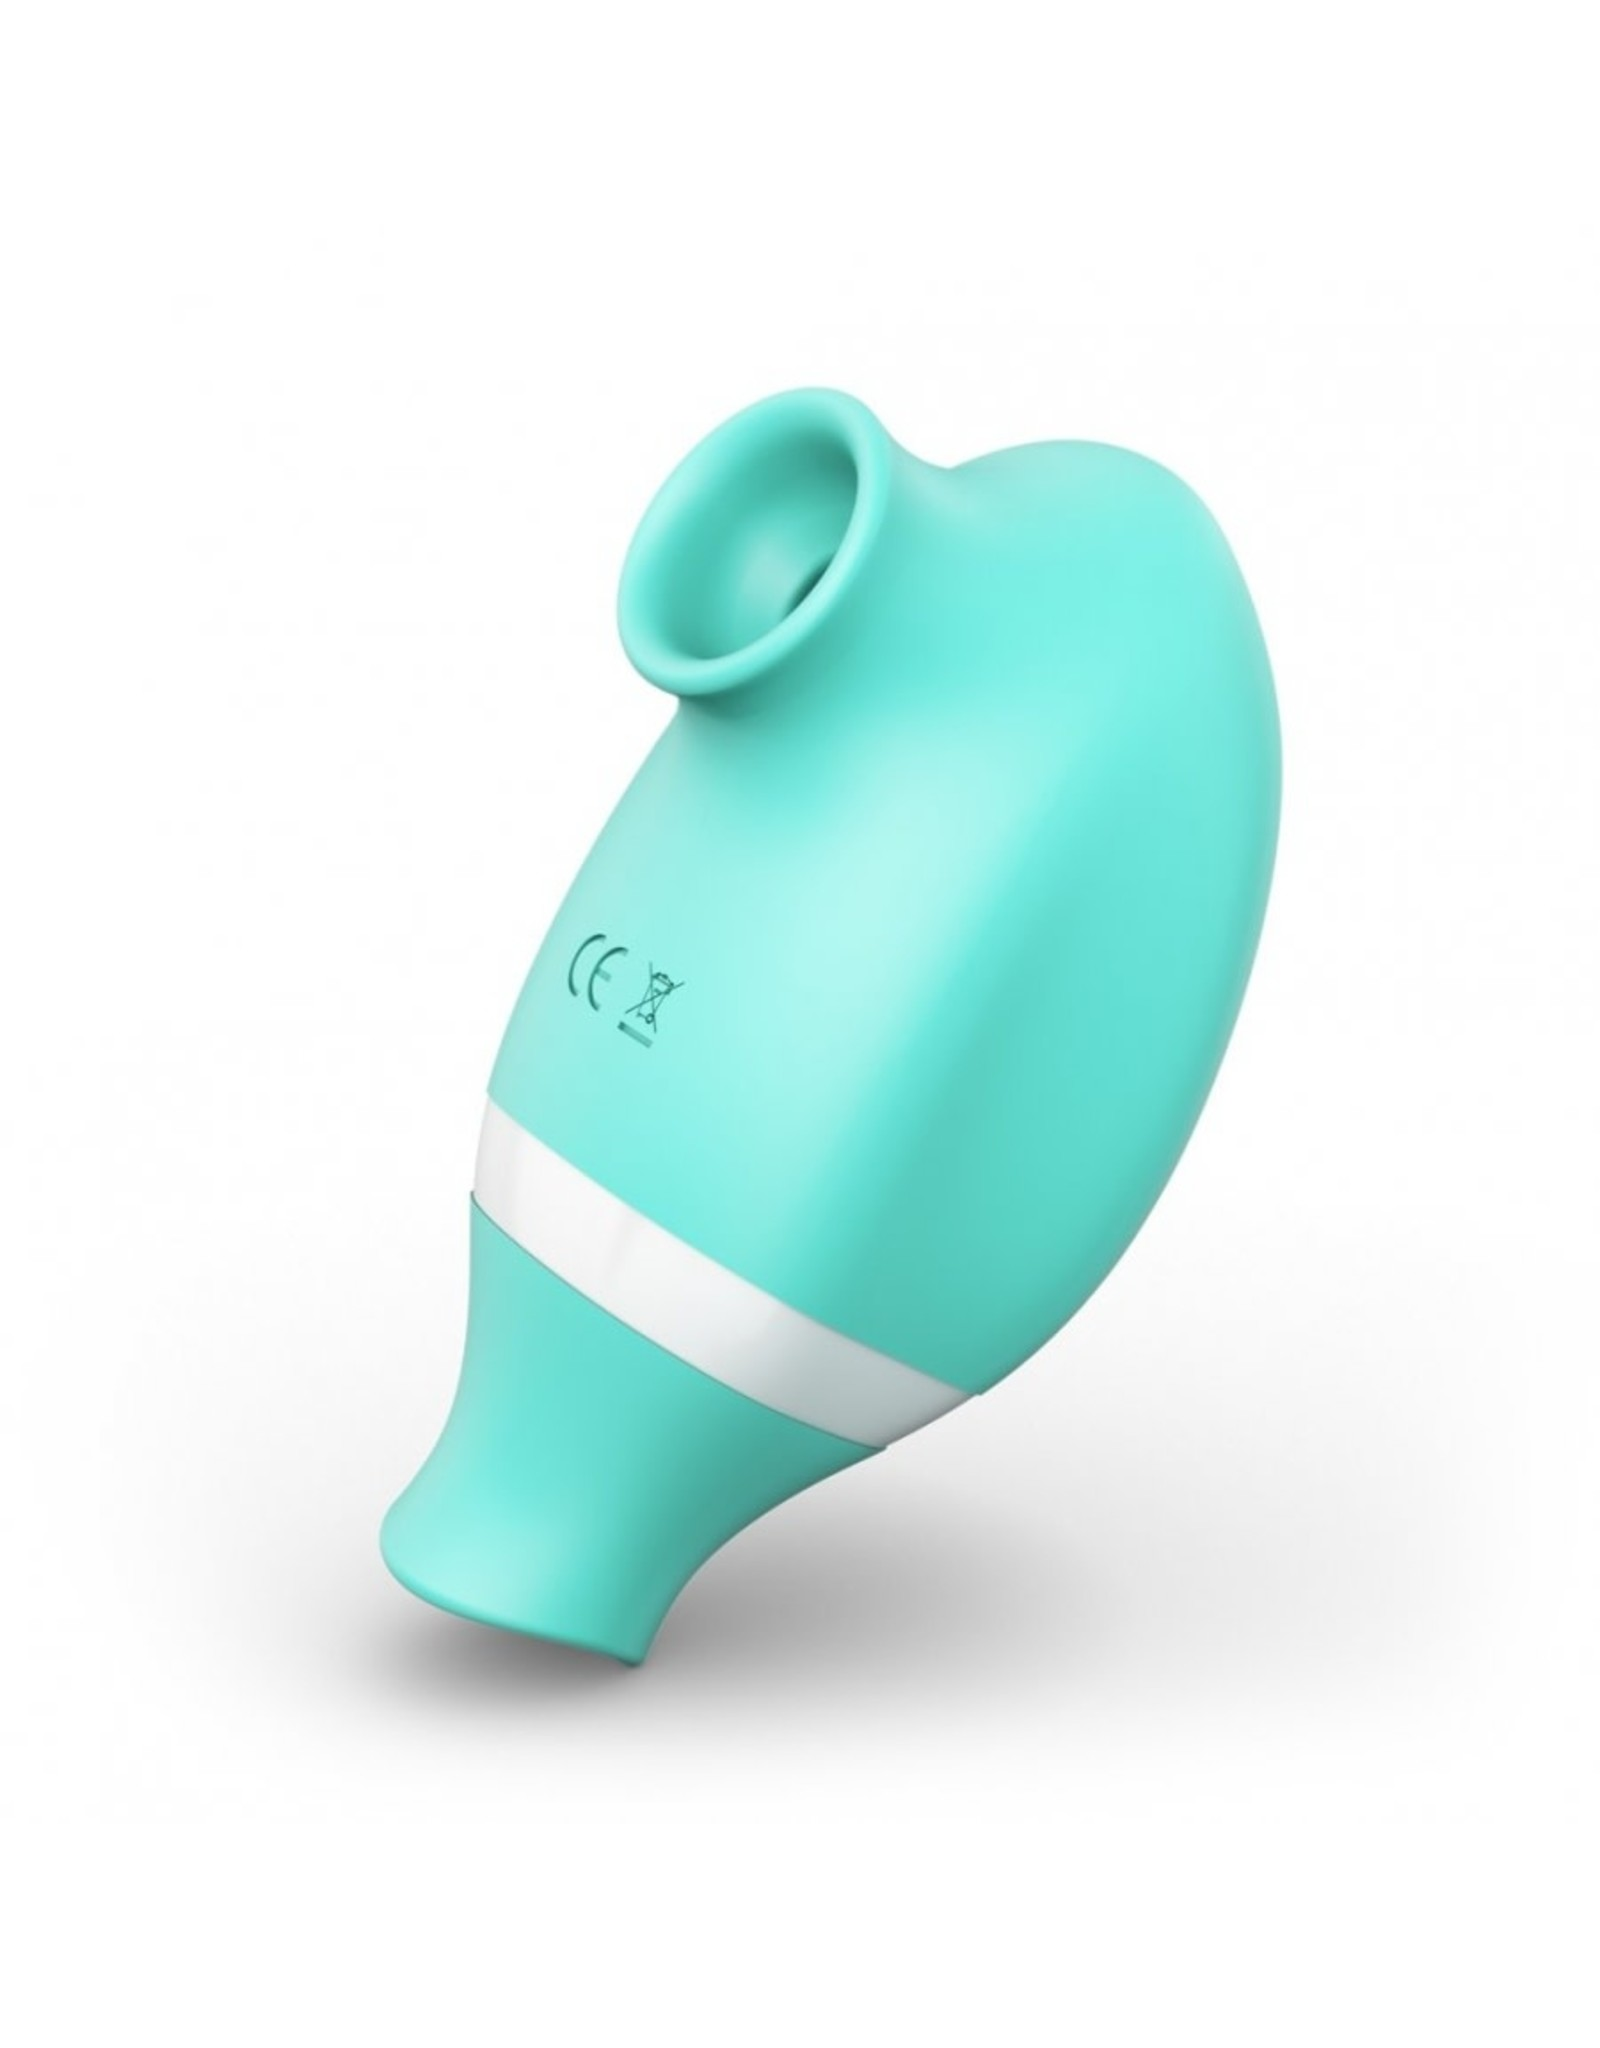 TRACY'S DOG TRACY'S DOG TF 2 IN 1 CLITORAL VIBRATOR